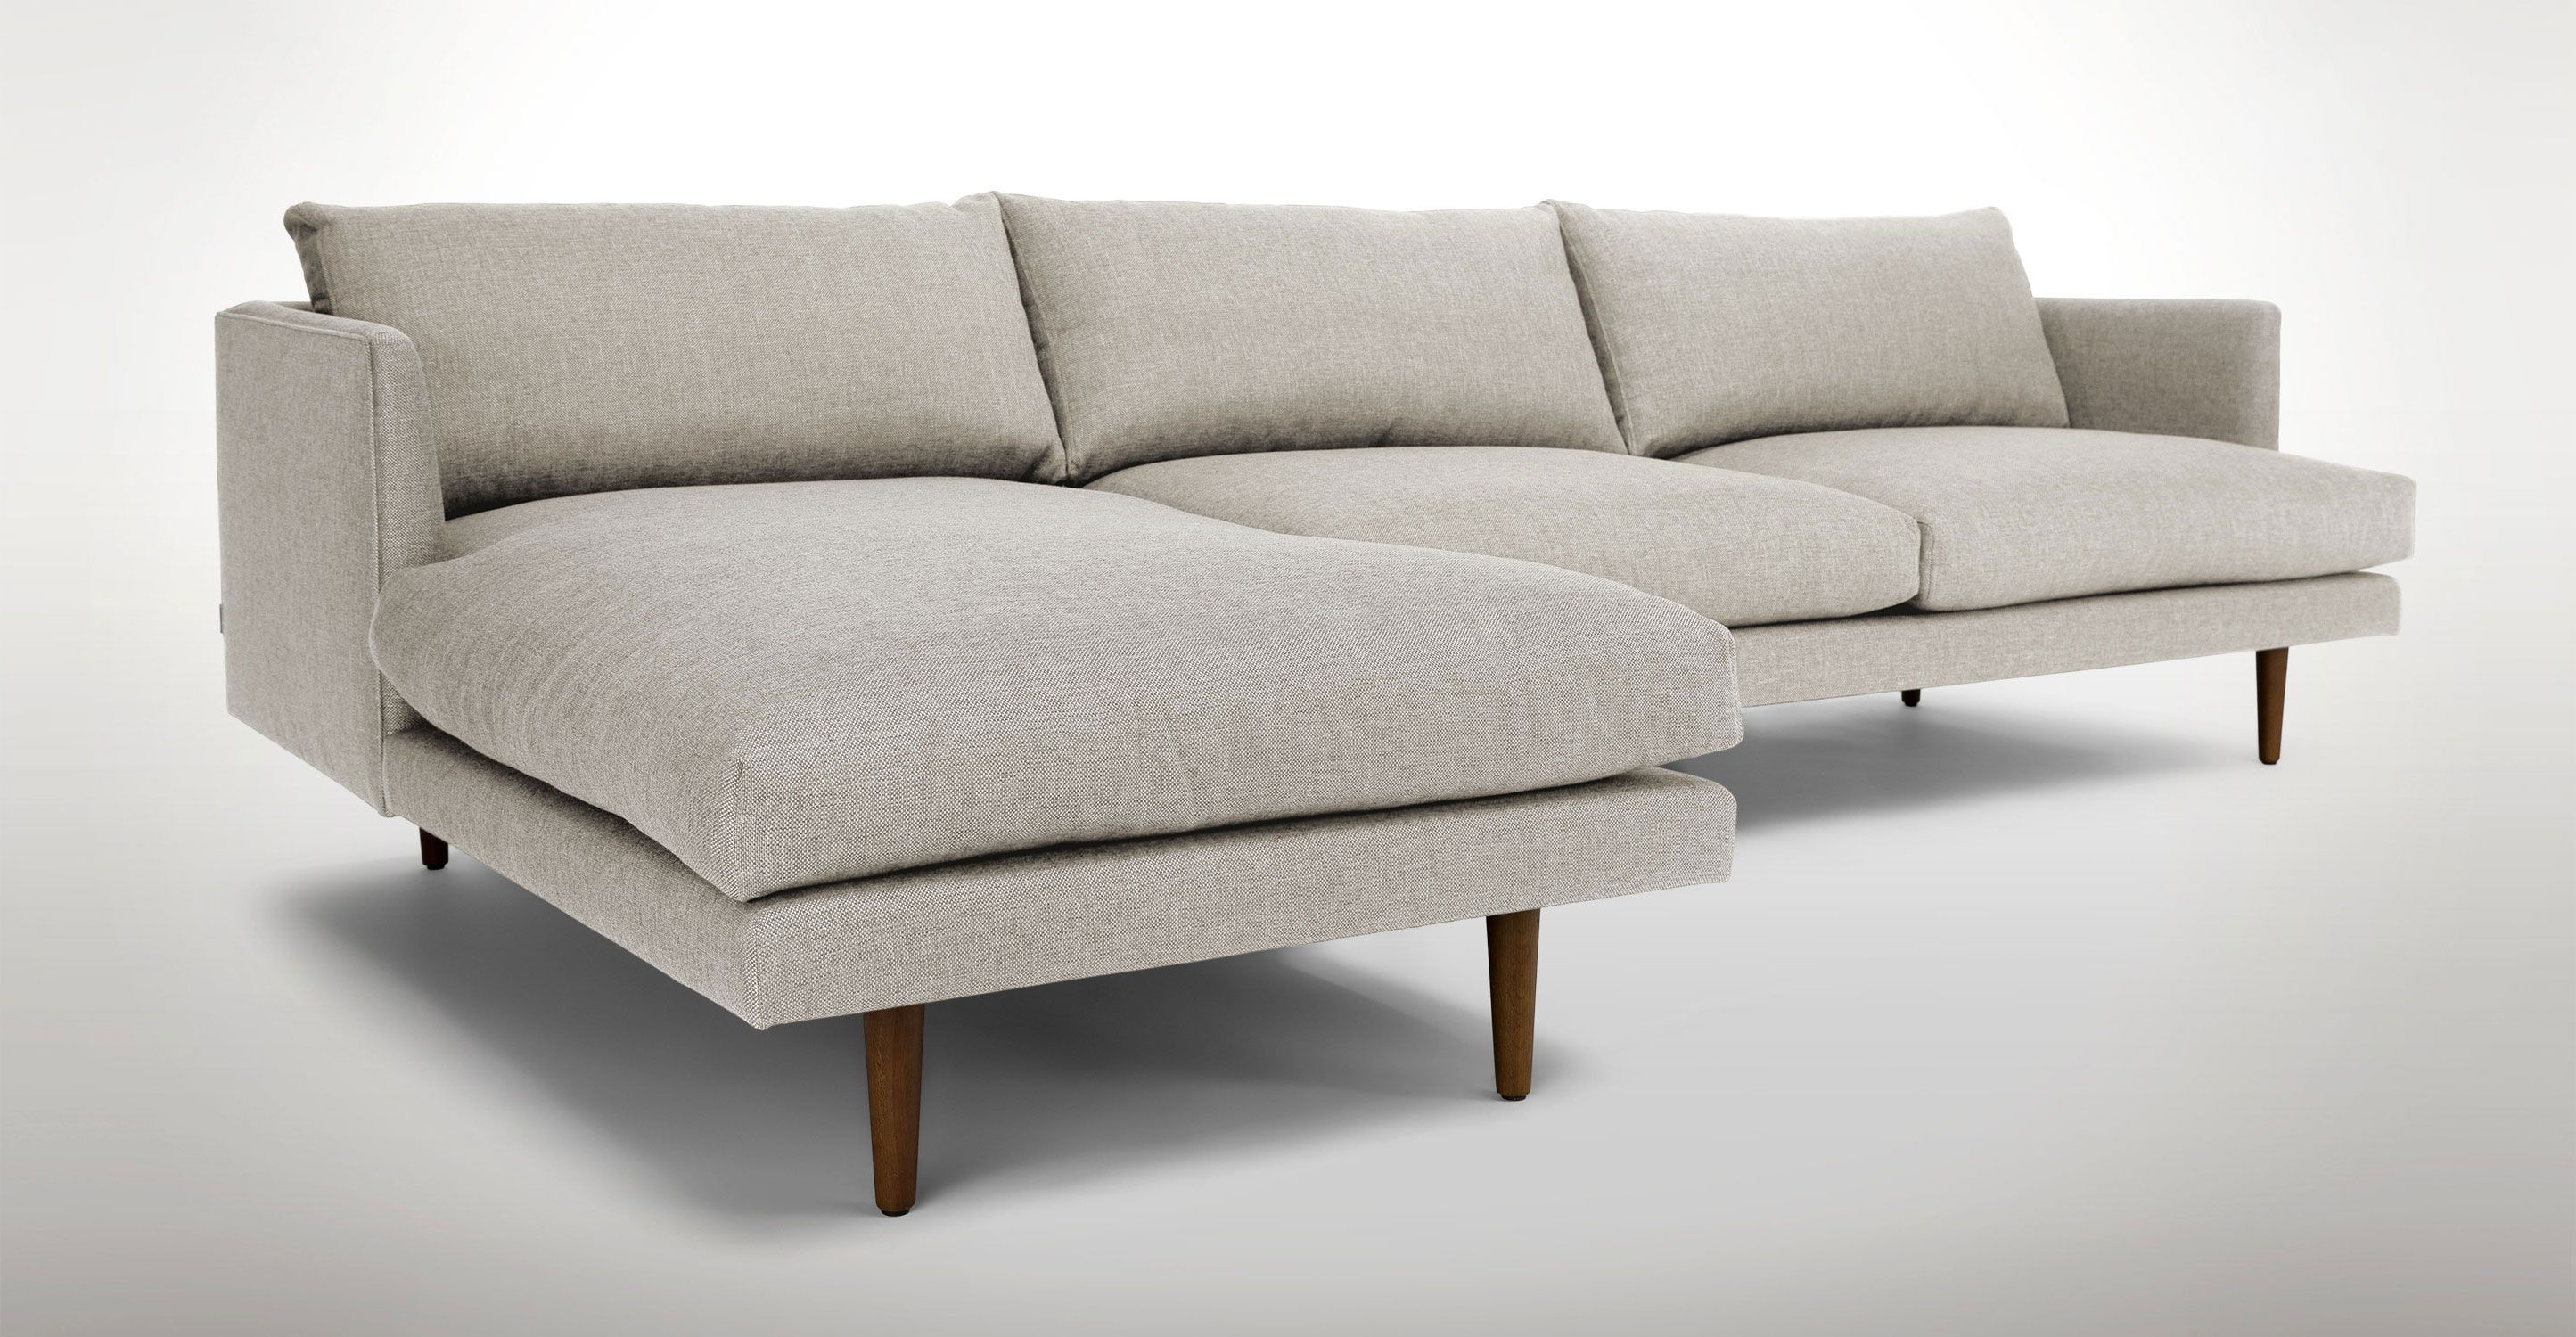 Burrard seasalt grey left sectional sofa sectionals article modern mid century and scandinavian furniture